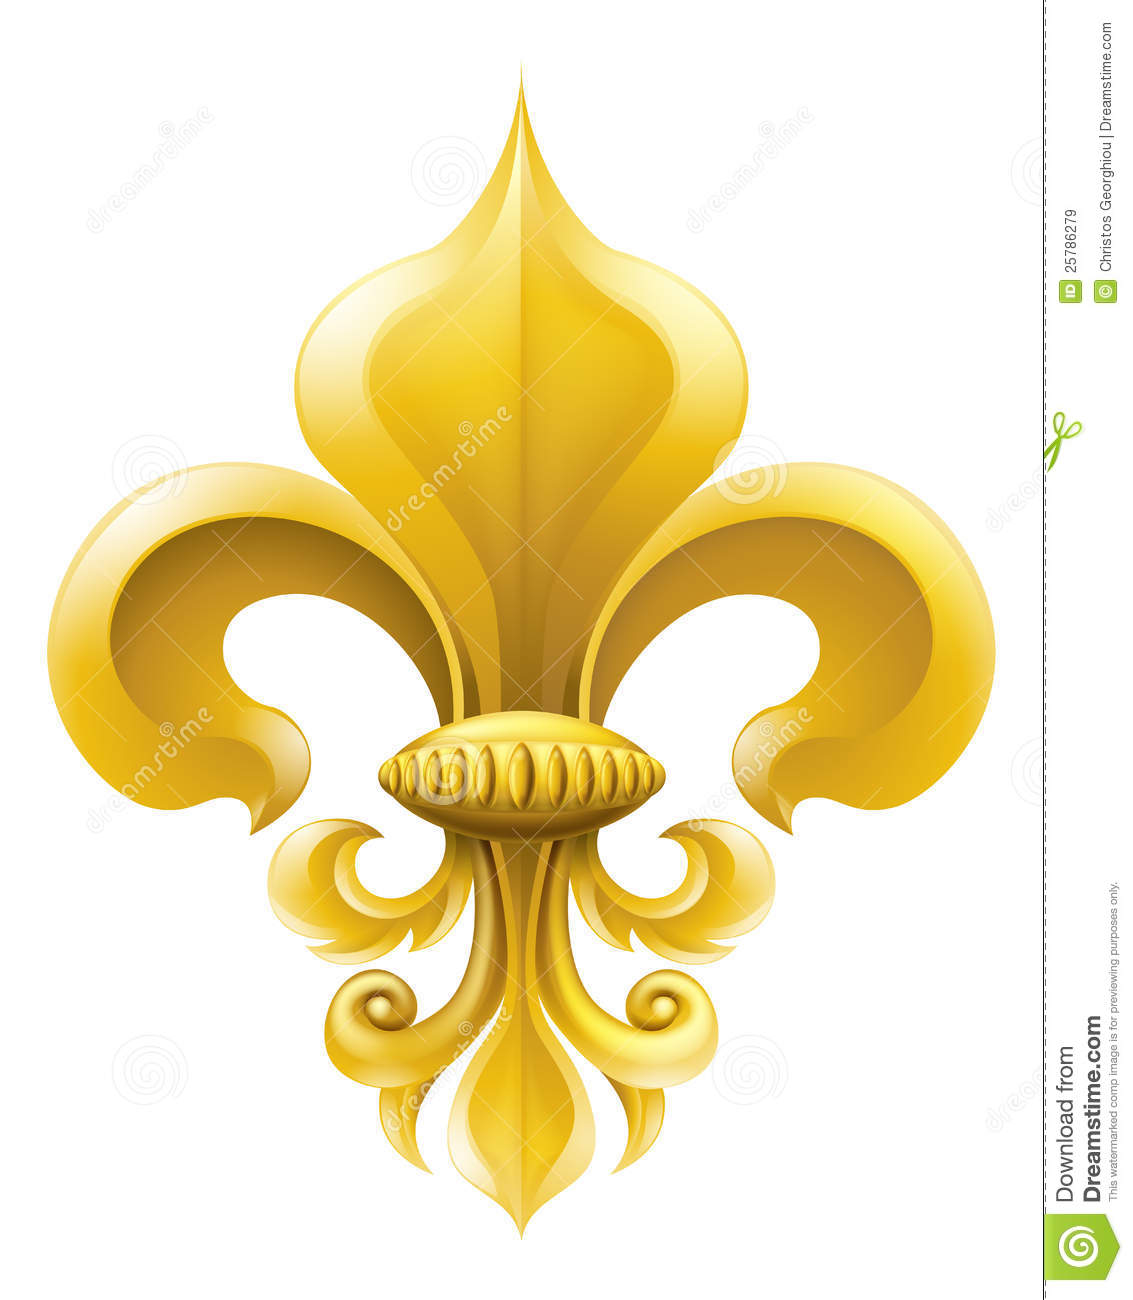 hight resolution of golden fleur de lis decorative design or heraldic symbol